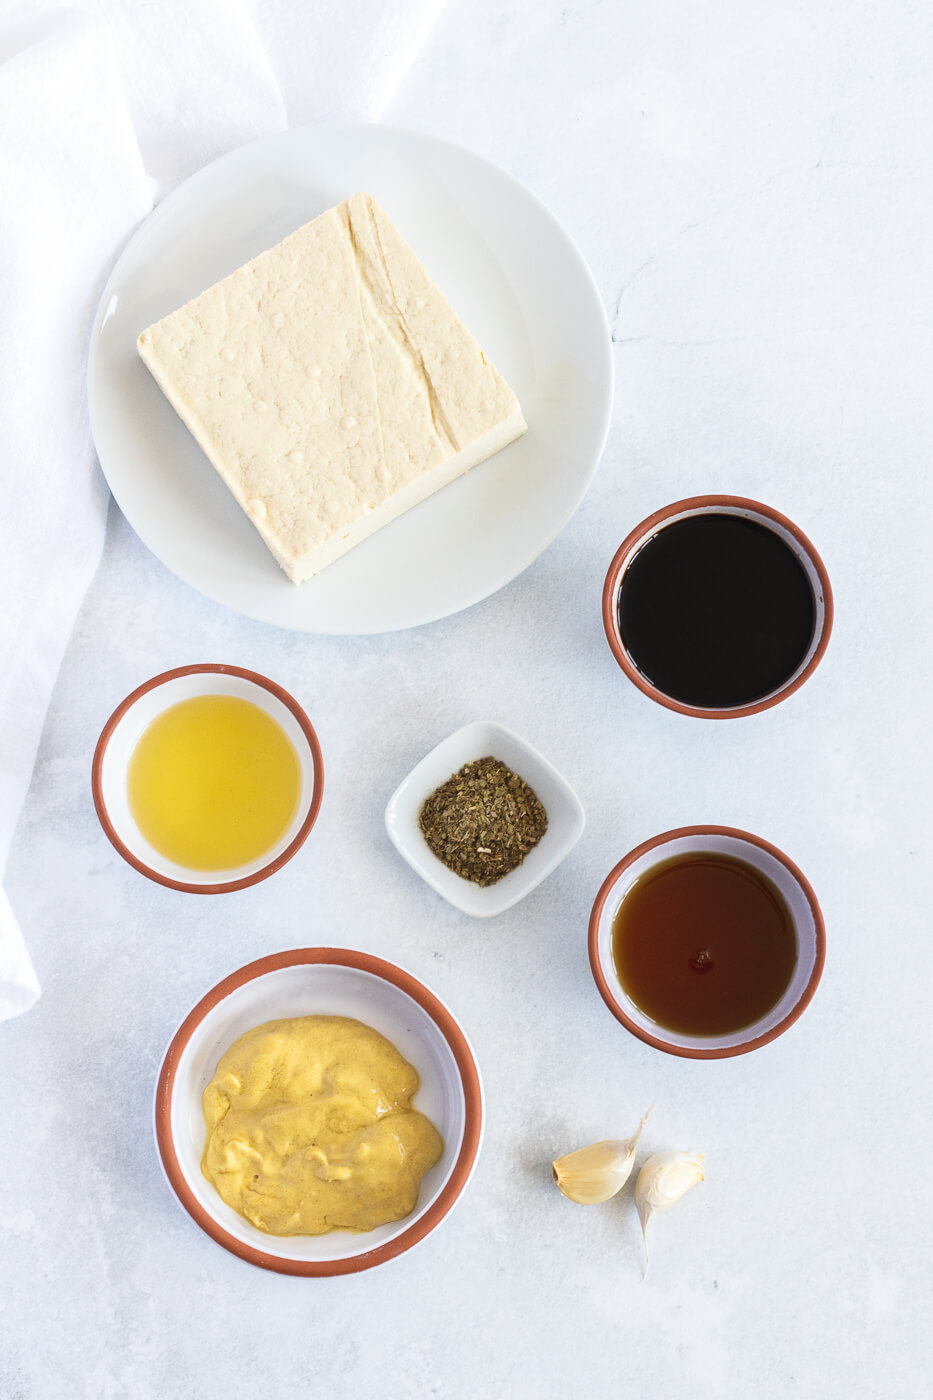 The ingredients for marinated tofu are pictured in small bowls on a white countertop next to a block of tofu.